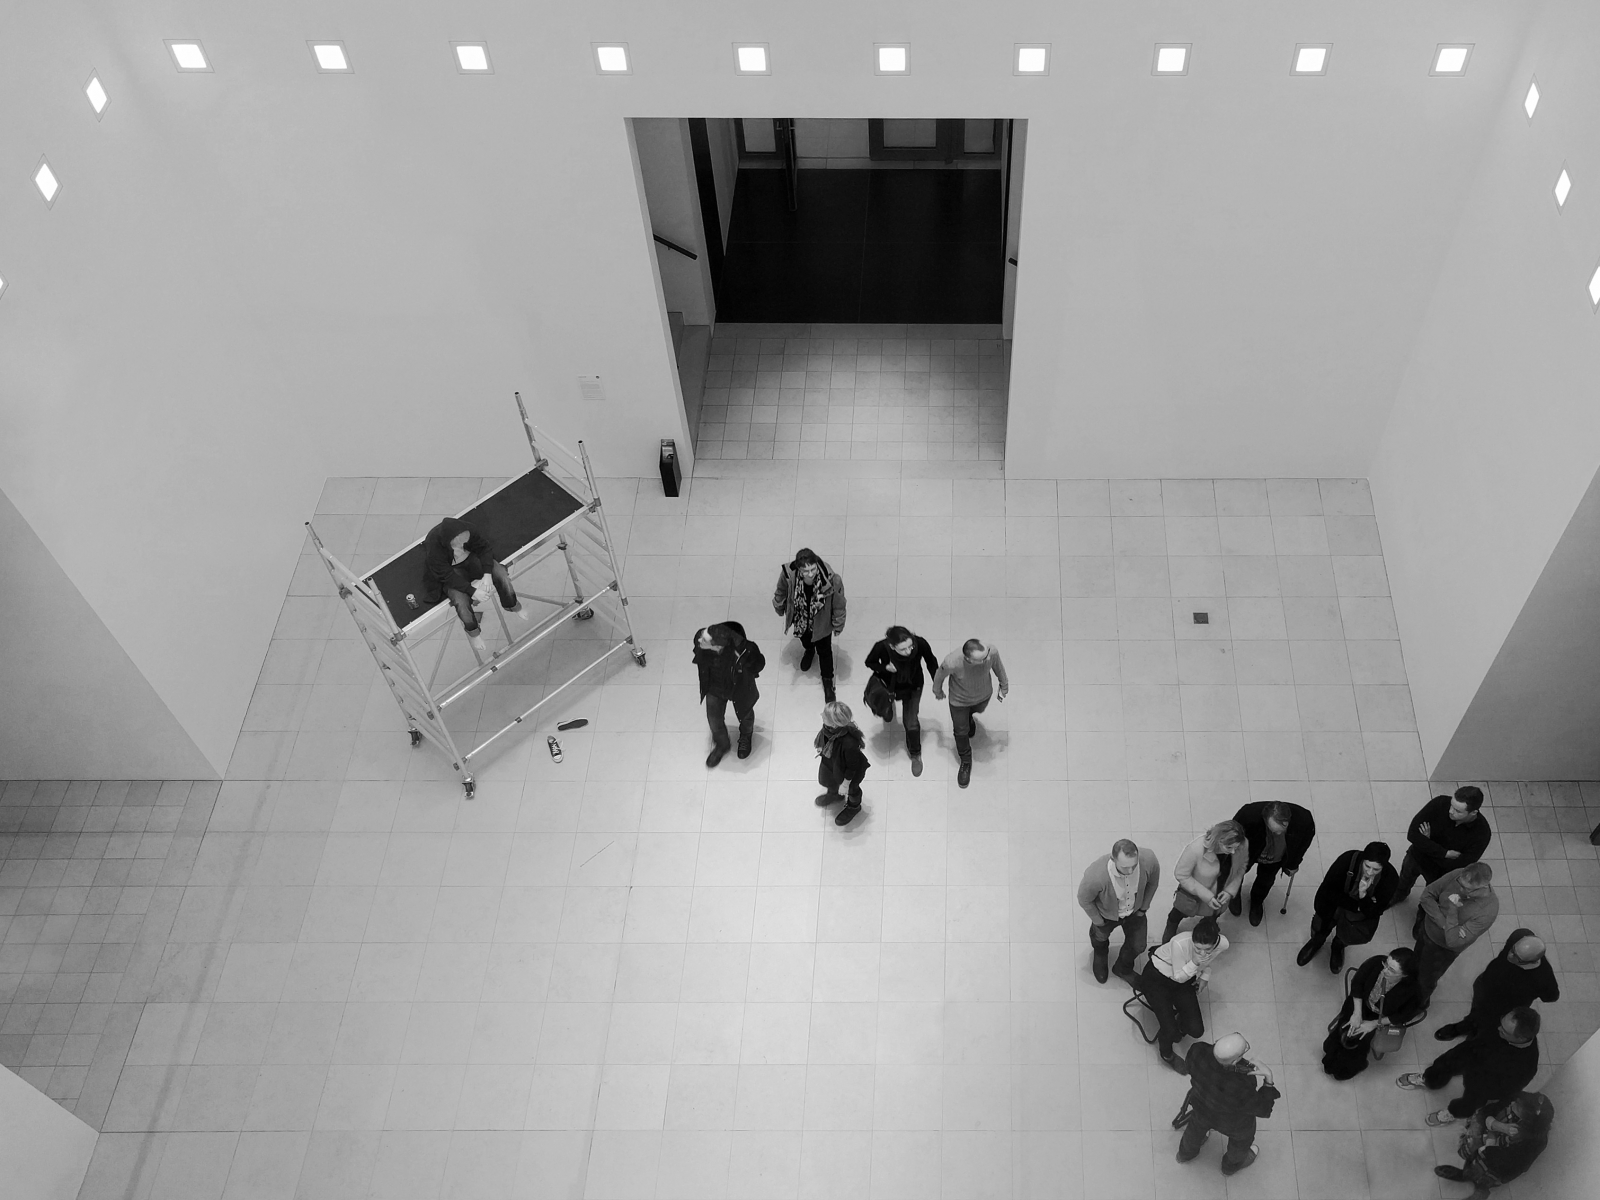 People waiting in an exhibition room